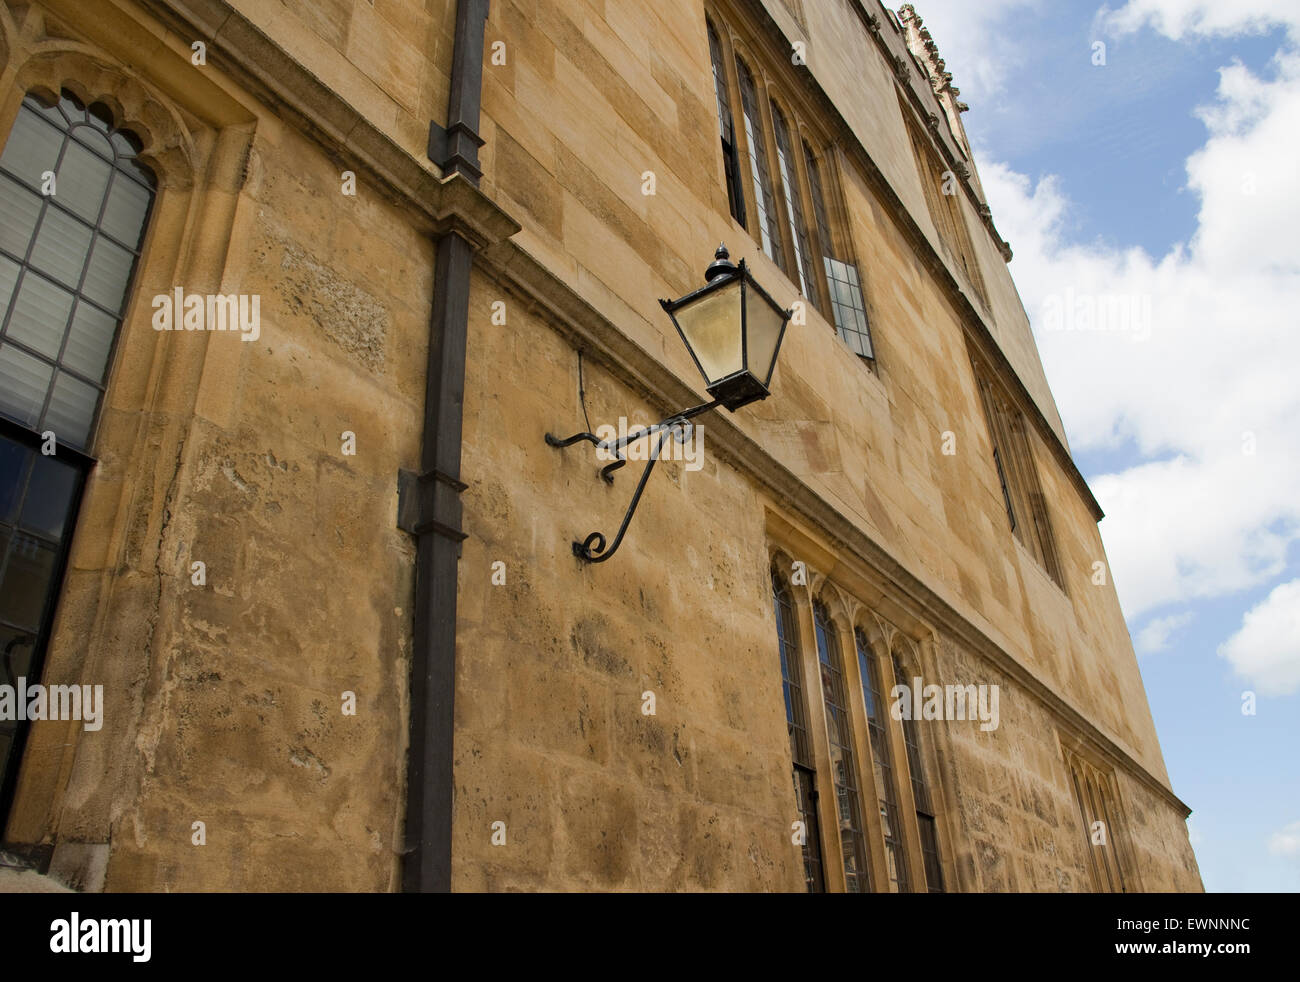 Angled view of Oxford building wall and lamp - Stock Image